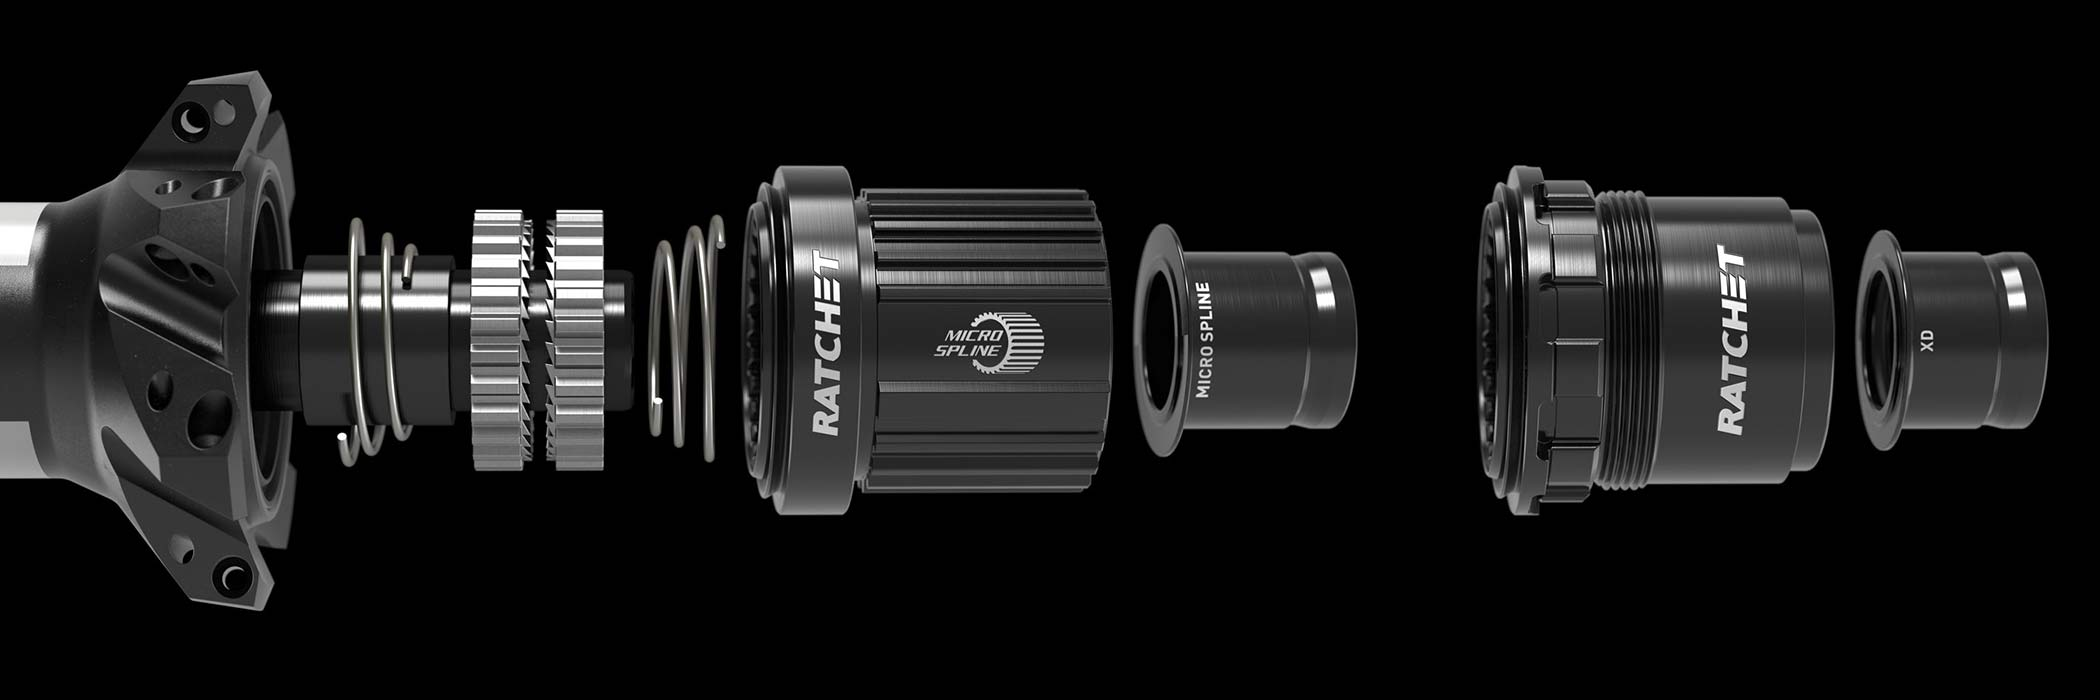 New DT Swiss 350 MTB hubs, lighter faster still affordable 36T Star Ratchet, tool-free swaps